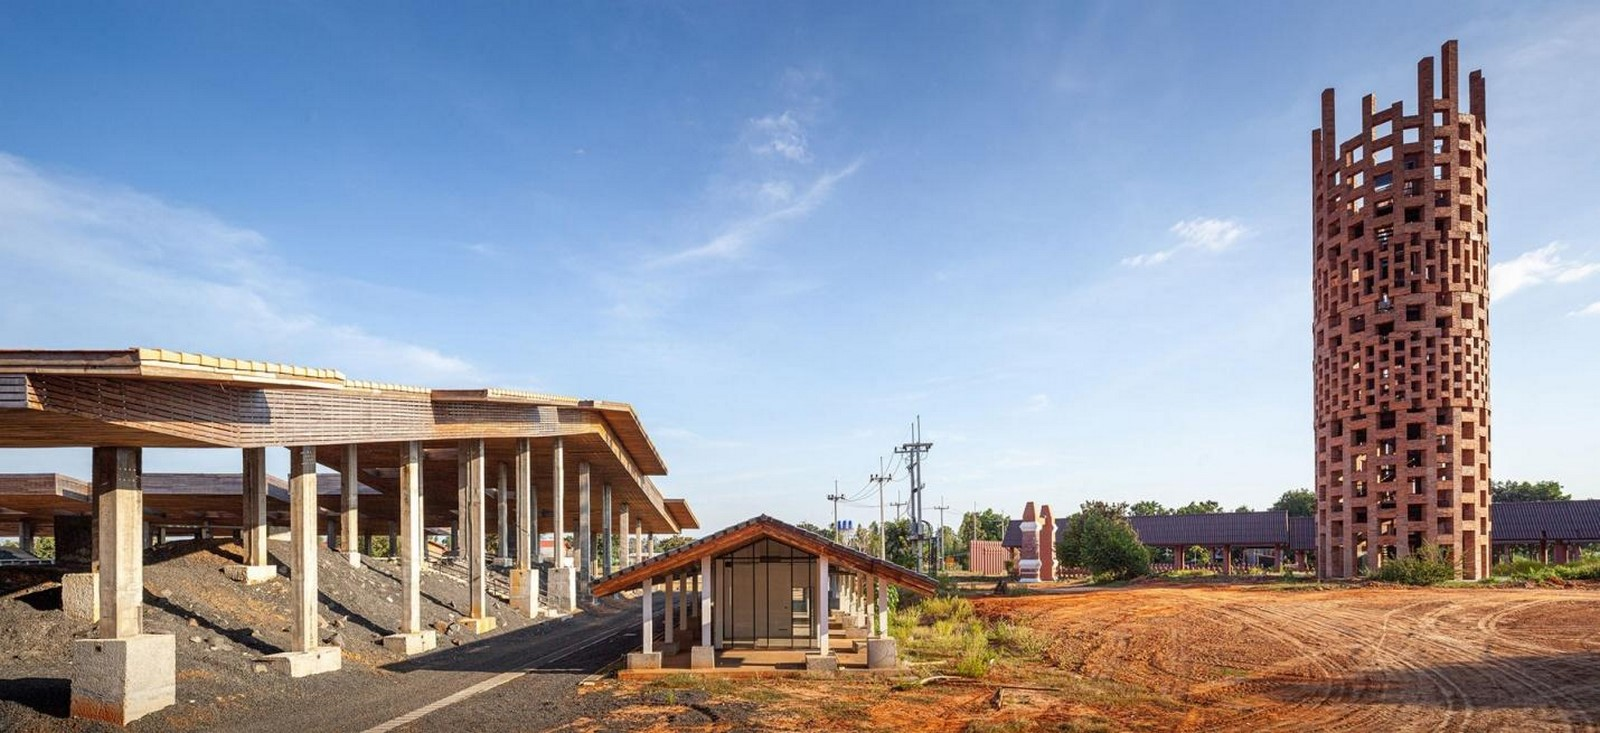 'Cultural courtyard' for elephants + humans in thailand created by Bangkok project studio- sheet4